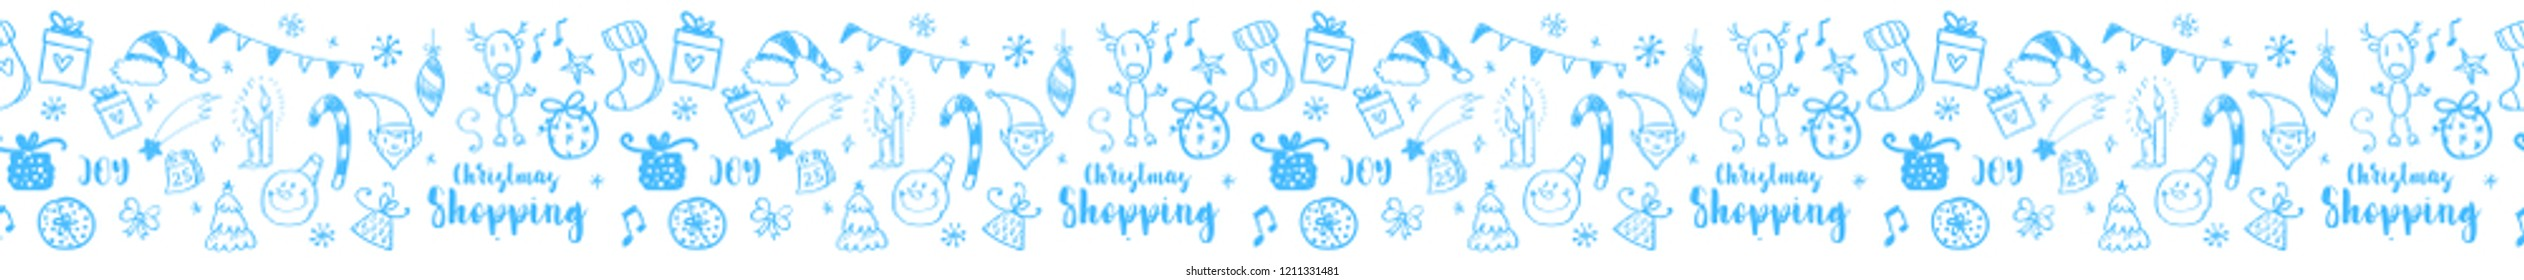 Hand drawn doodle illustration. Stripe ornaments and Illustrator pattern included. Snowflakes, fir-tree branch, snowman, christmas balls, cones, present box.